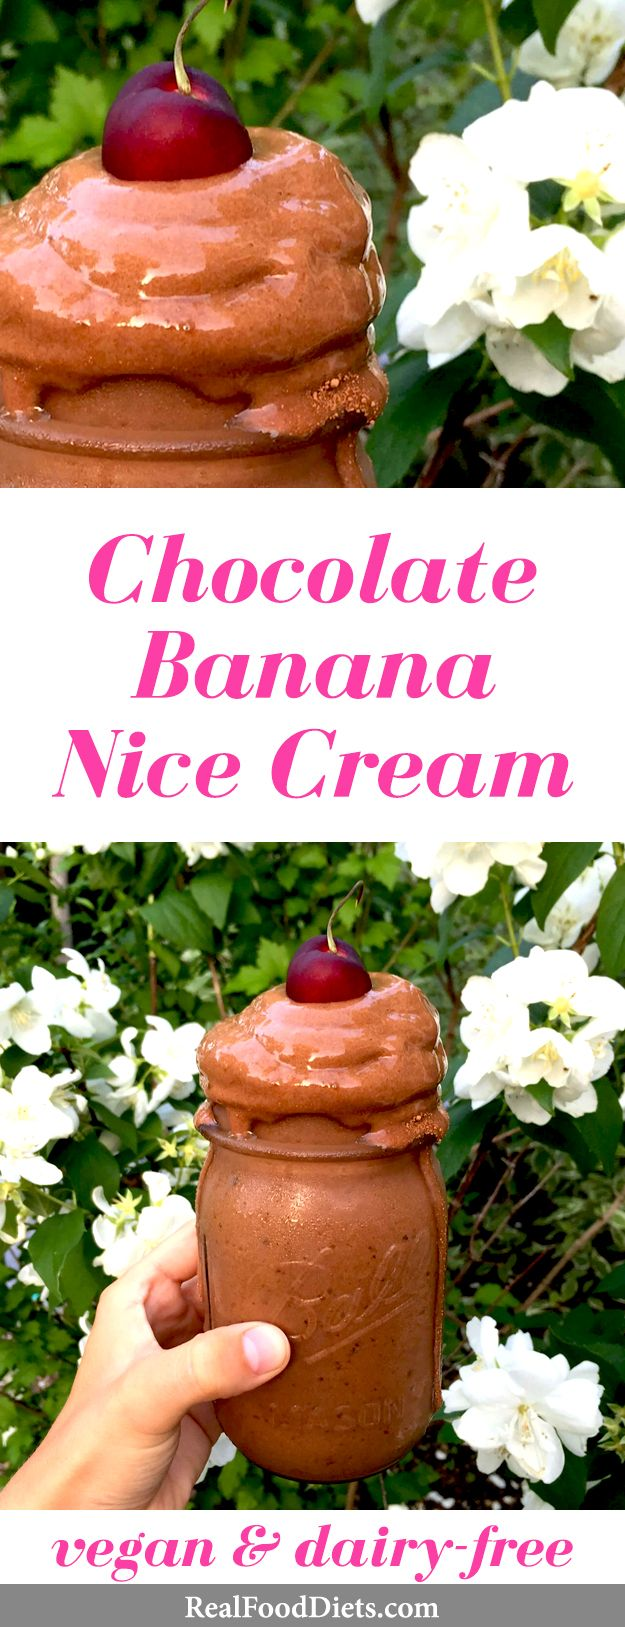 Beat the heat this summer with chocolate banana nice cream — a dairy-free vegan ice cream that's naturally sweetened. A healthy dessert made with sticky dates, raw cacao, and bananas from @raw_alignment. Learn how to make nice cream on @realfooddiets. Click for the recipe instructions. ♥